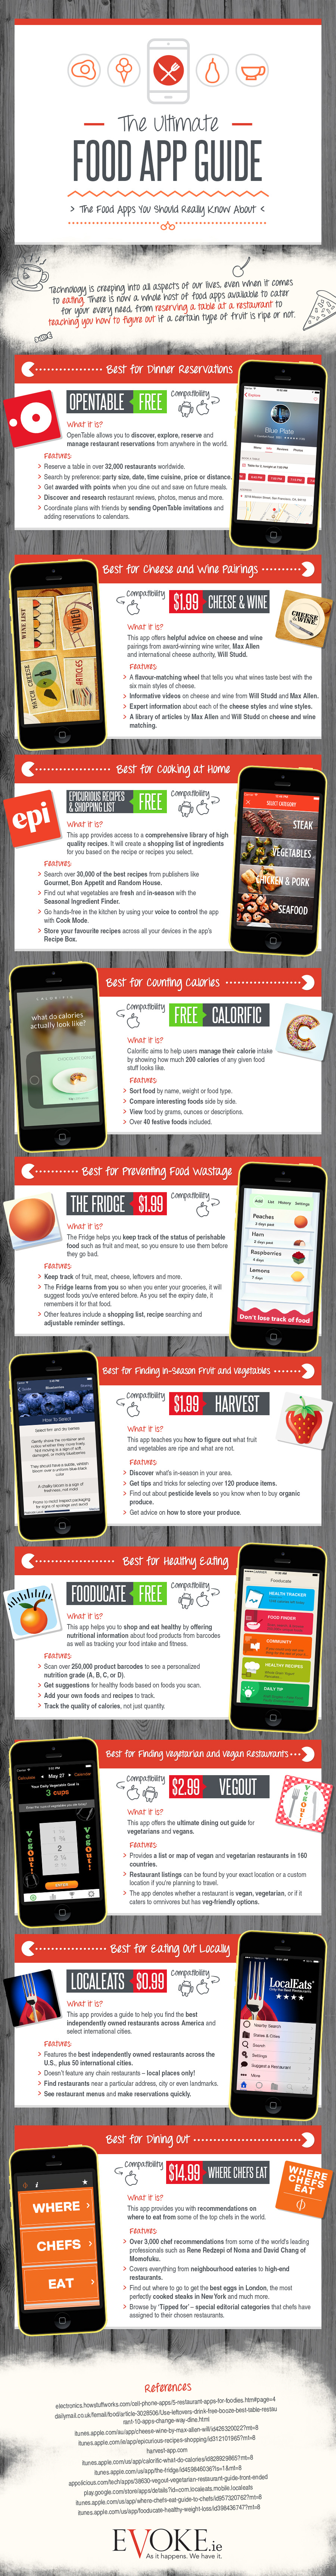 Food App Guide Infographic